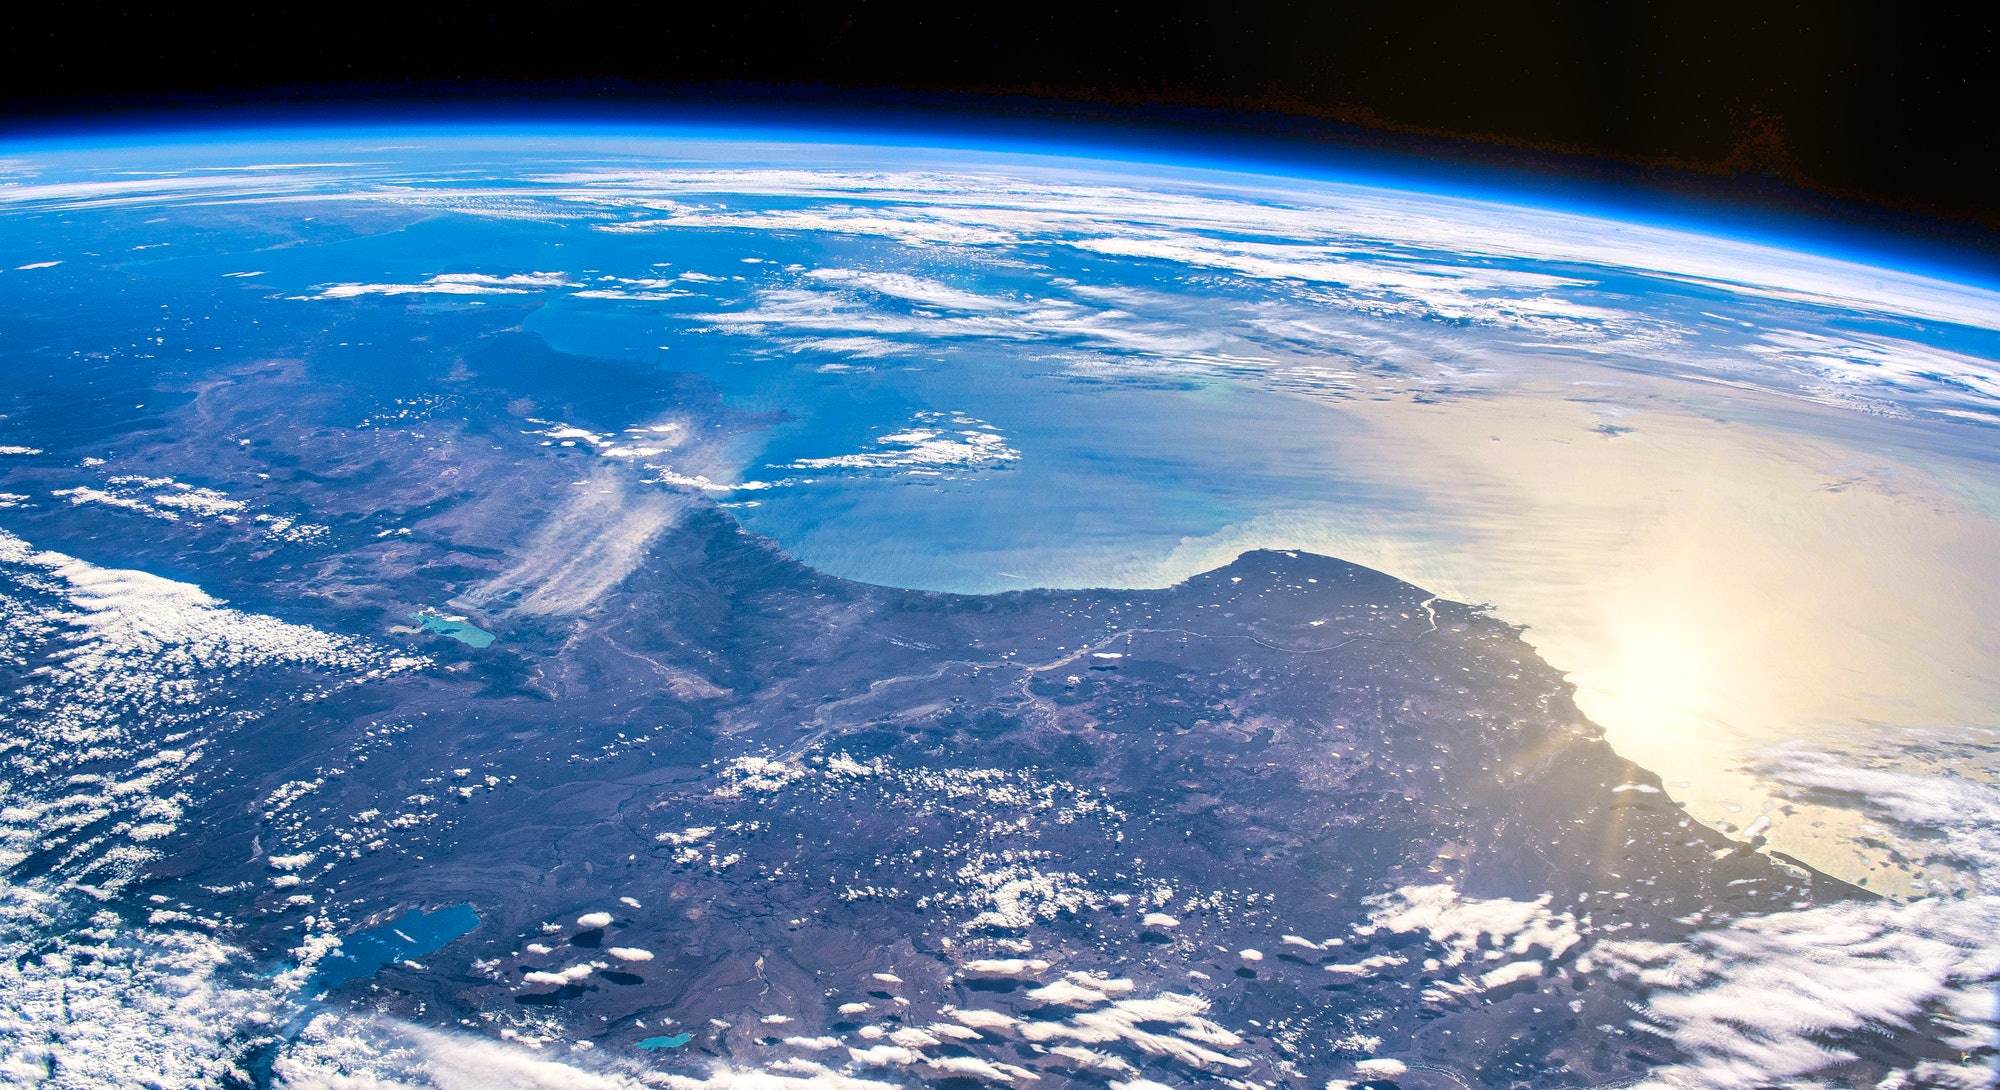 Earth from space image